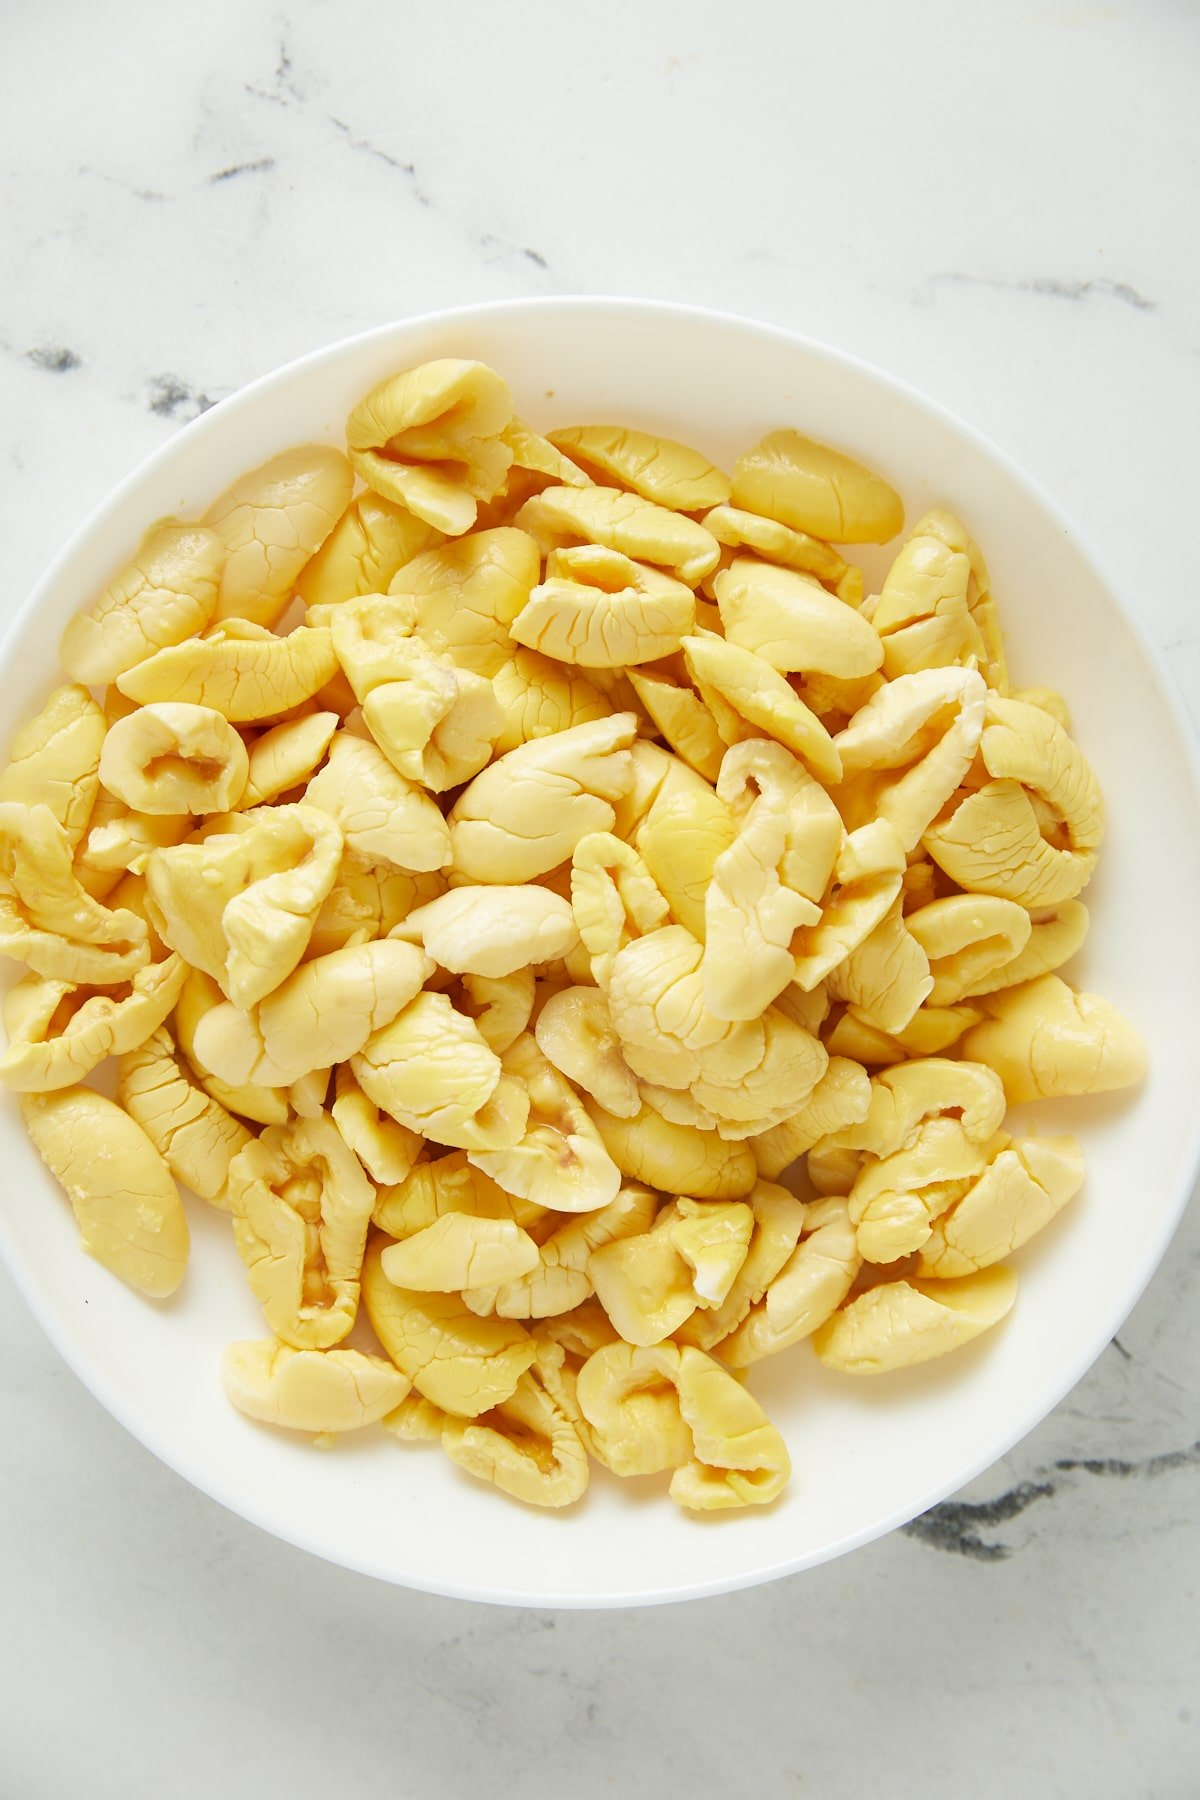 ackee in a white bowl